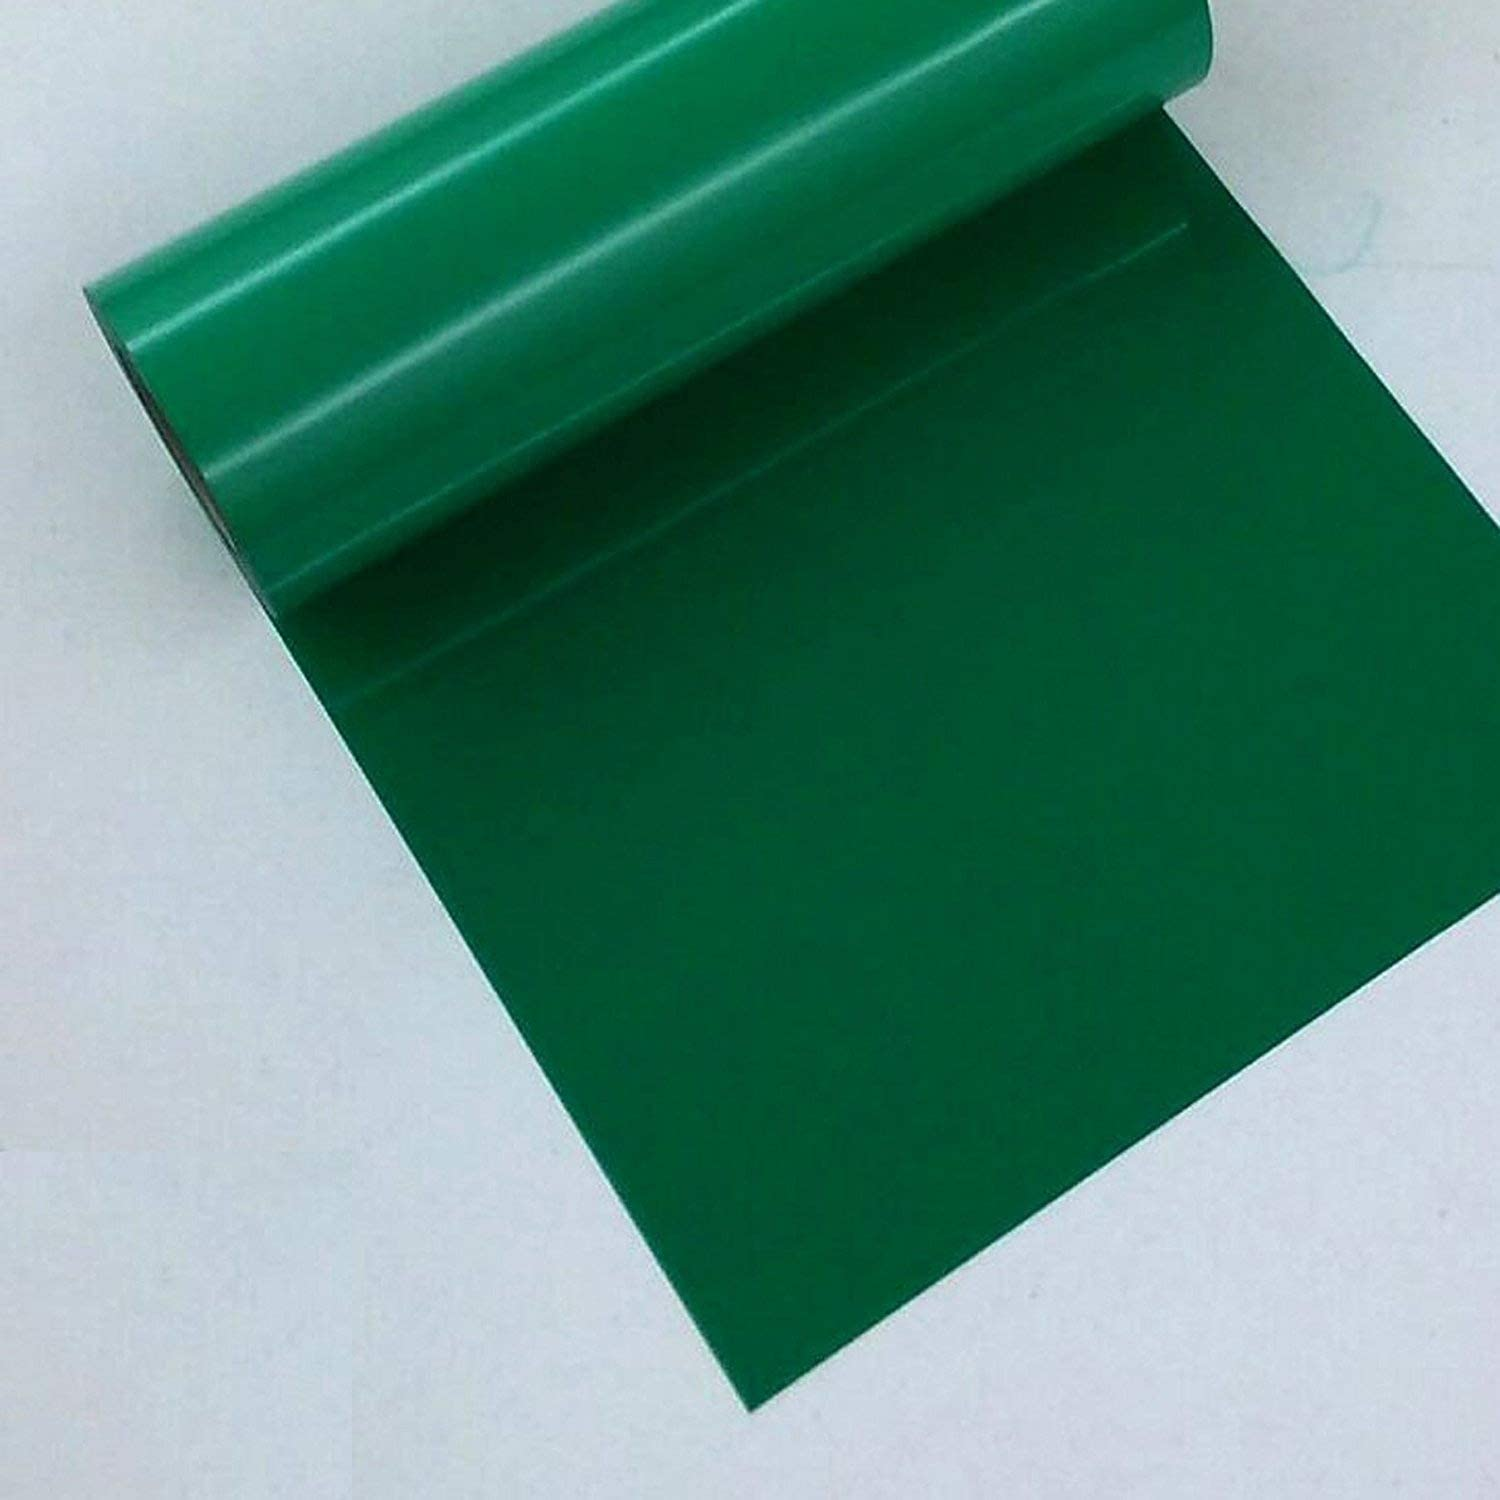 """Siser Easyweed Green 15"""" x 5' Iron on Heat Transfer Vinyl Roll: Arts, Crafts & Sewing"""